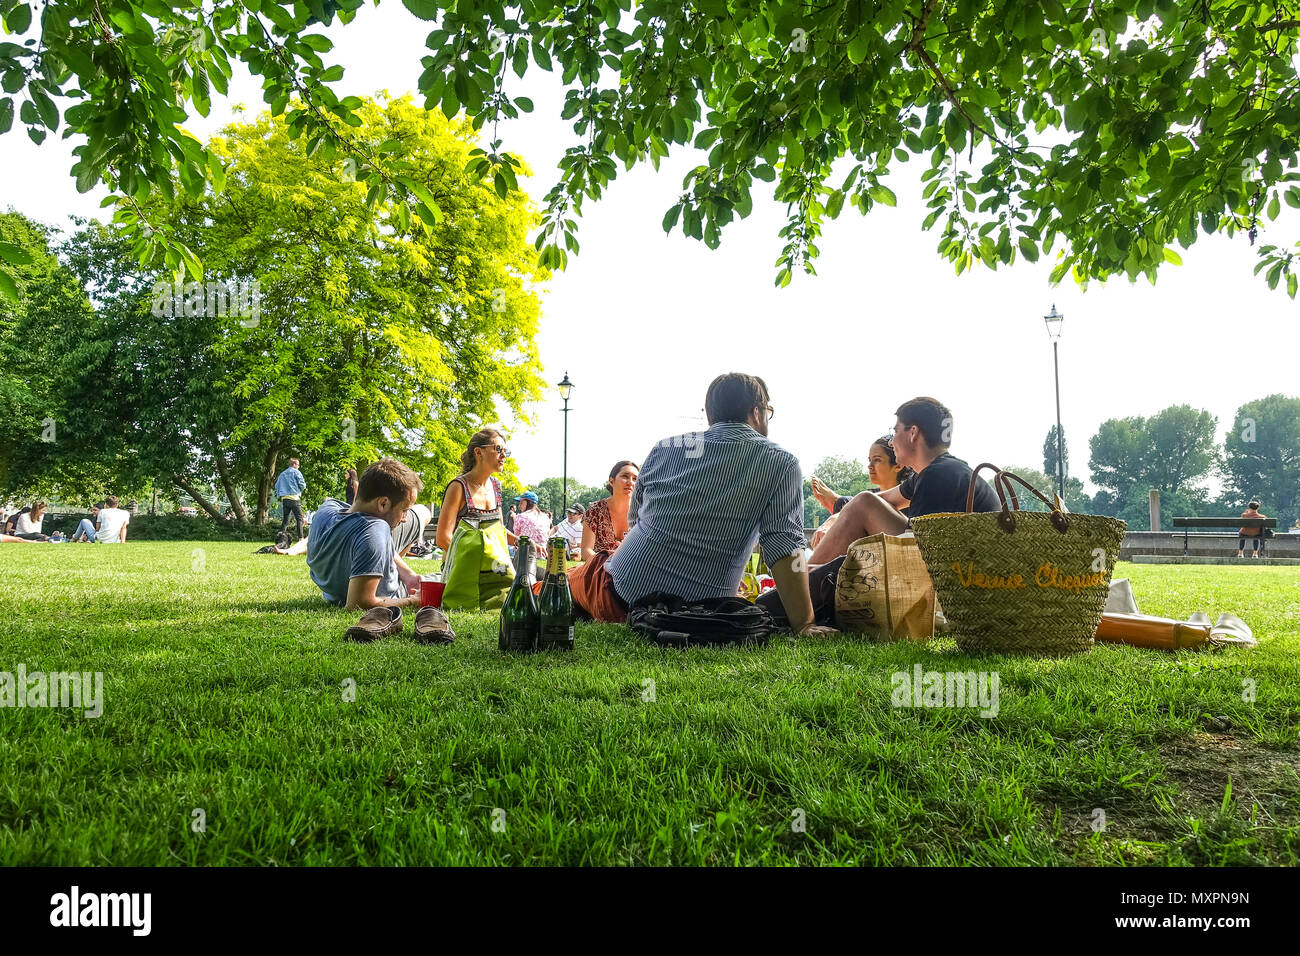 friends-enjoy-the-good-weather-and-have-a-picnic-in-the-park-at-furnival-gardens-at-hammersmith-in-london-uk-MXPN9N.jpg